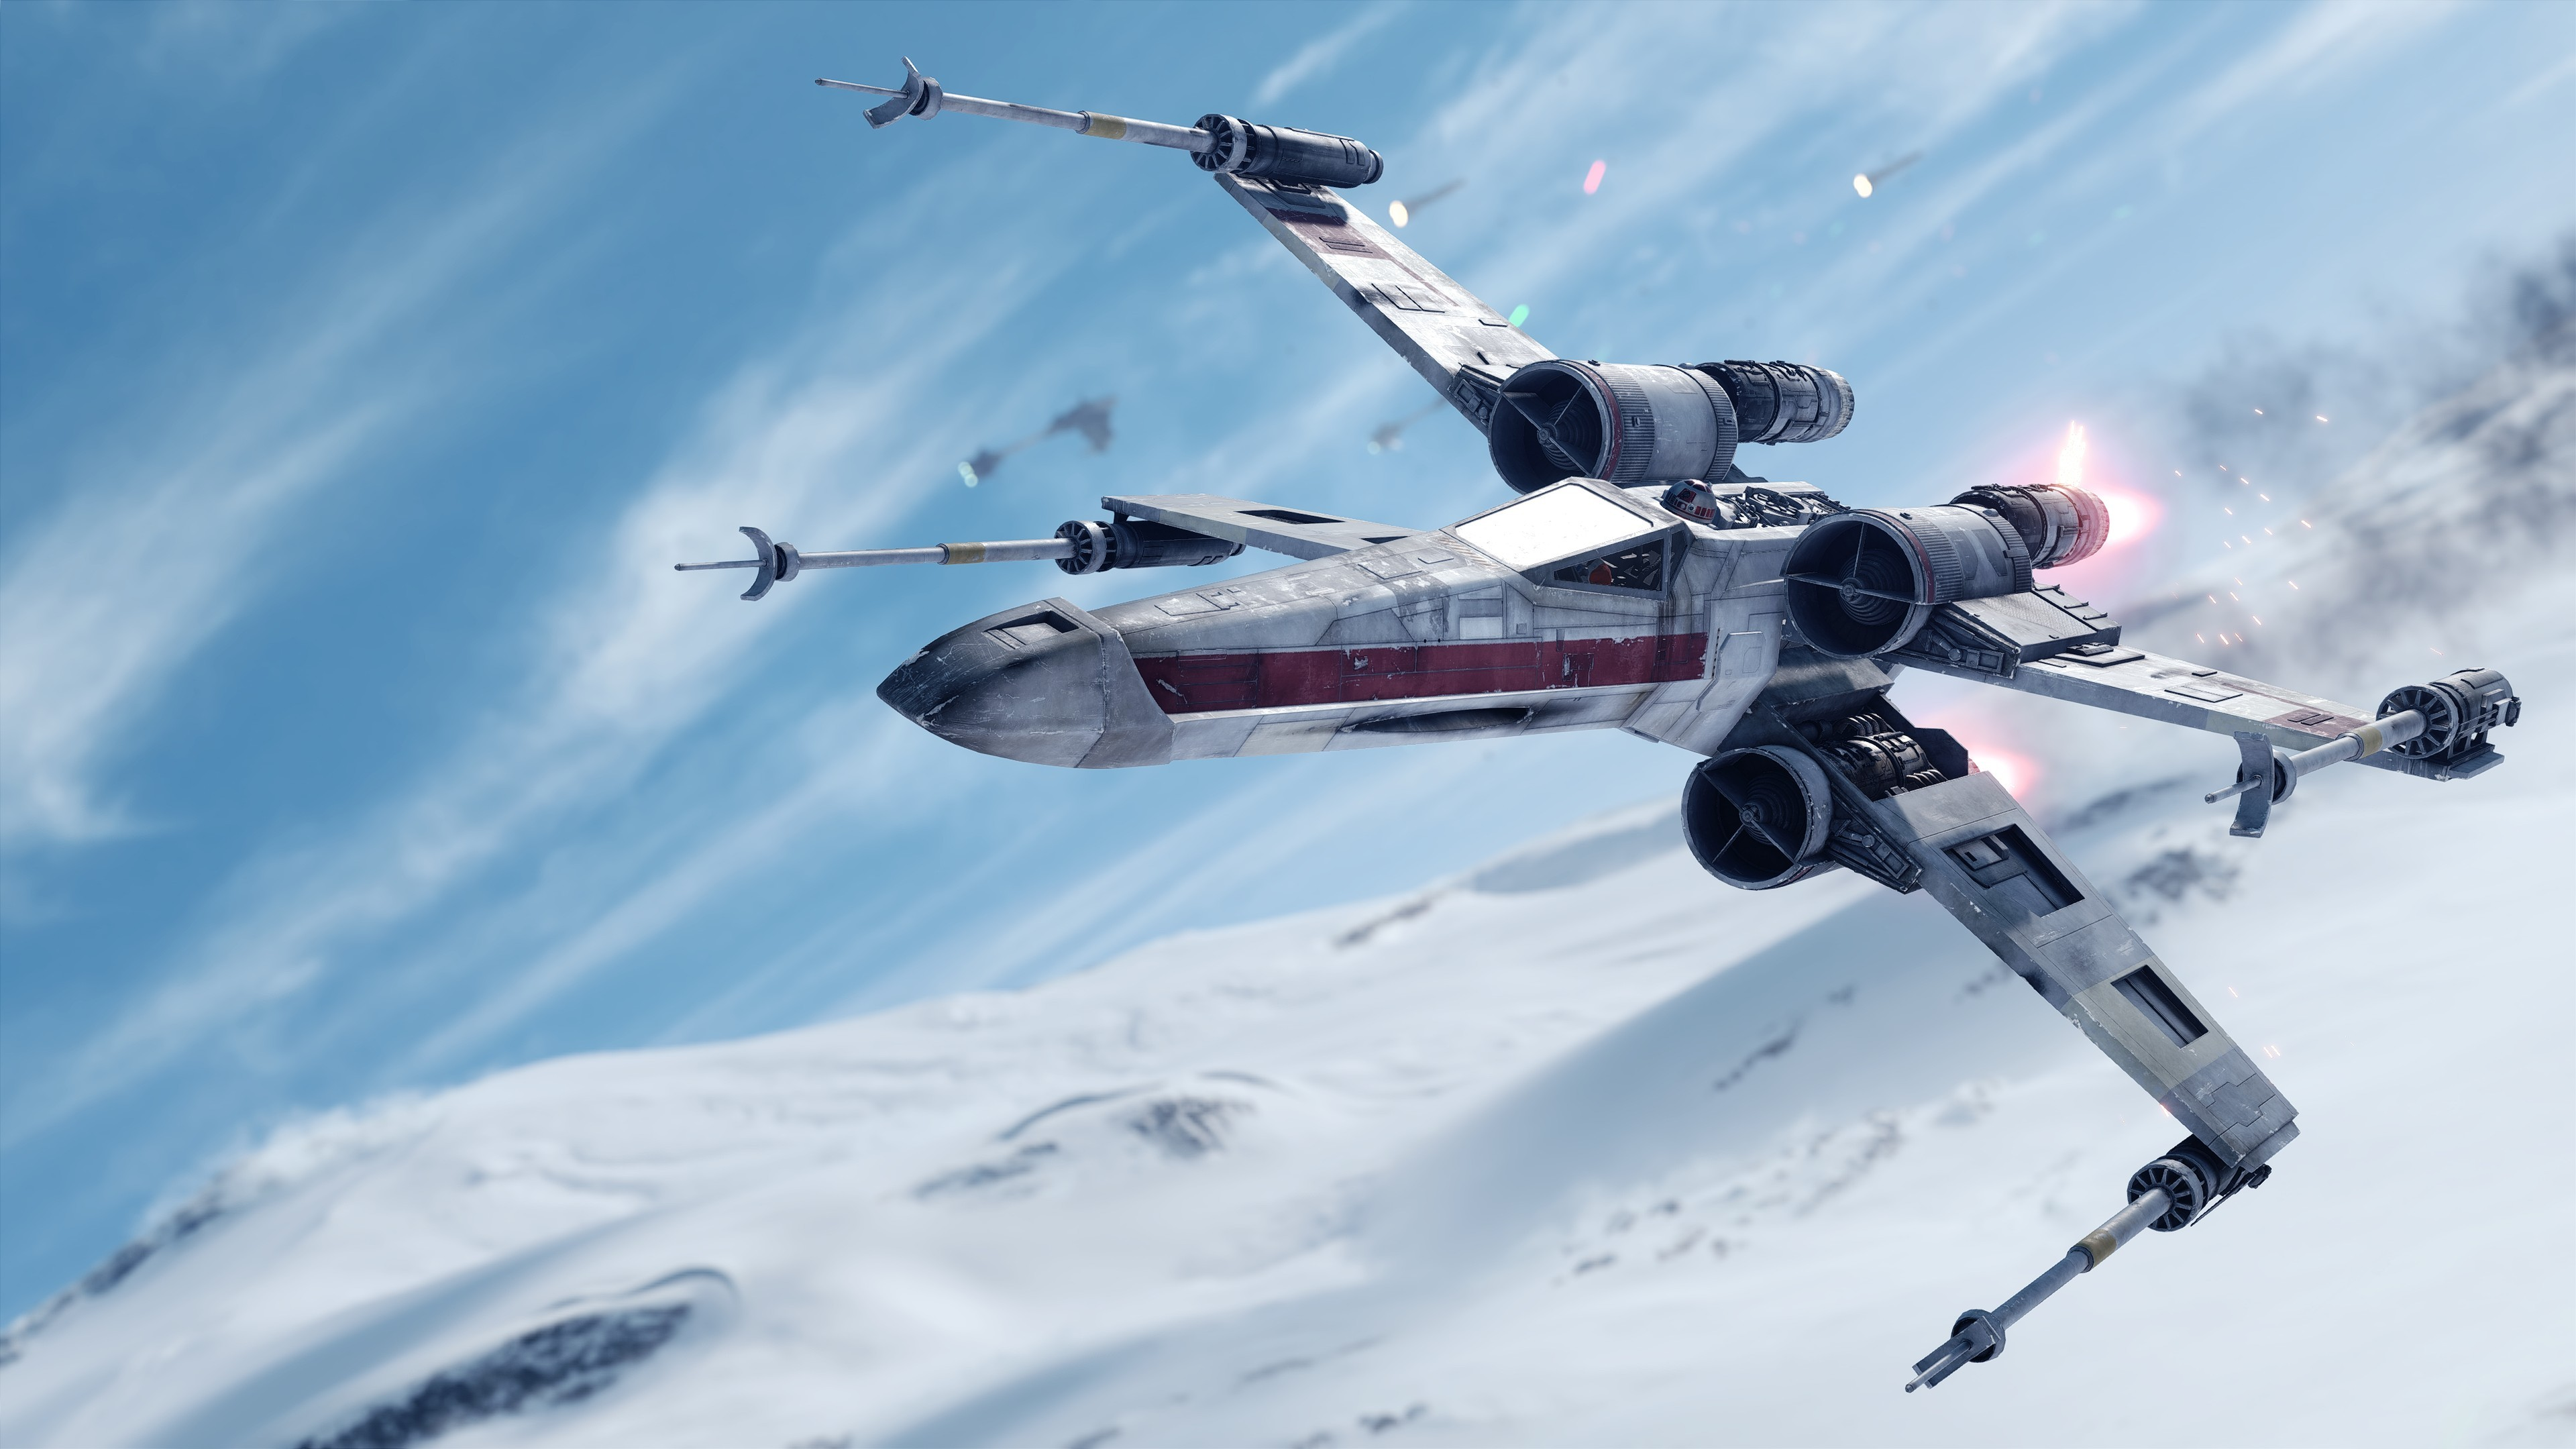 Amazing Screenshots From Star Wars Battlefront Shows Why Pc Is